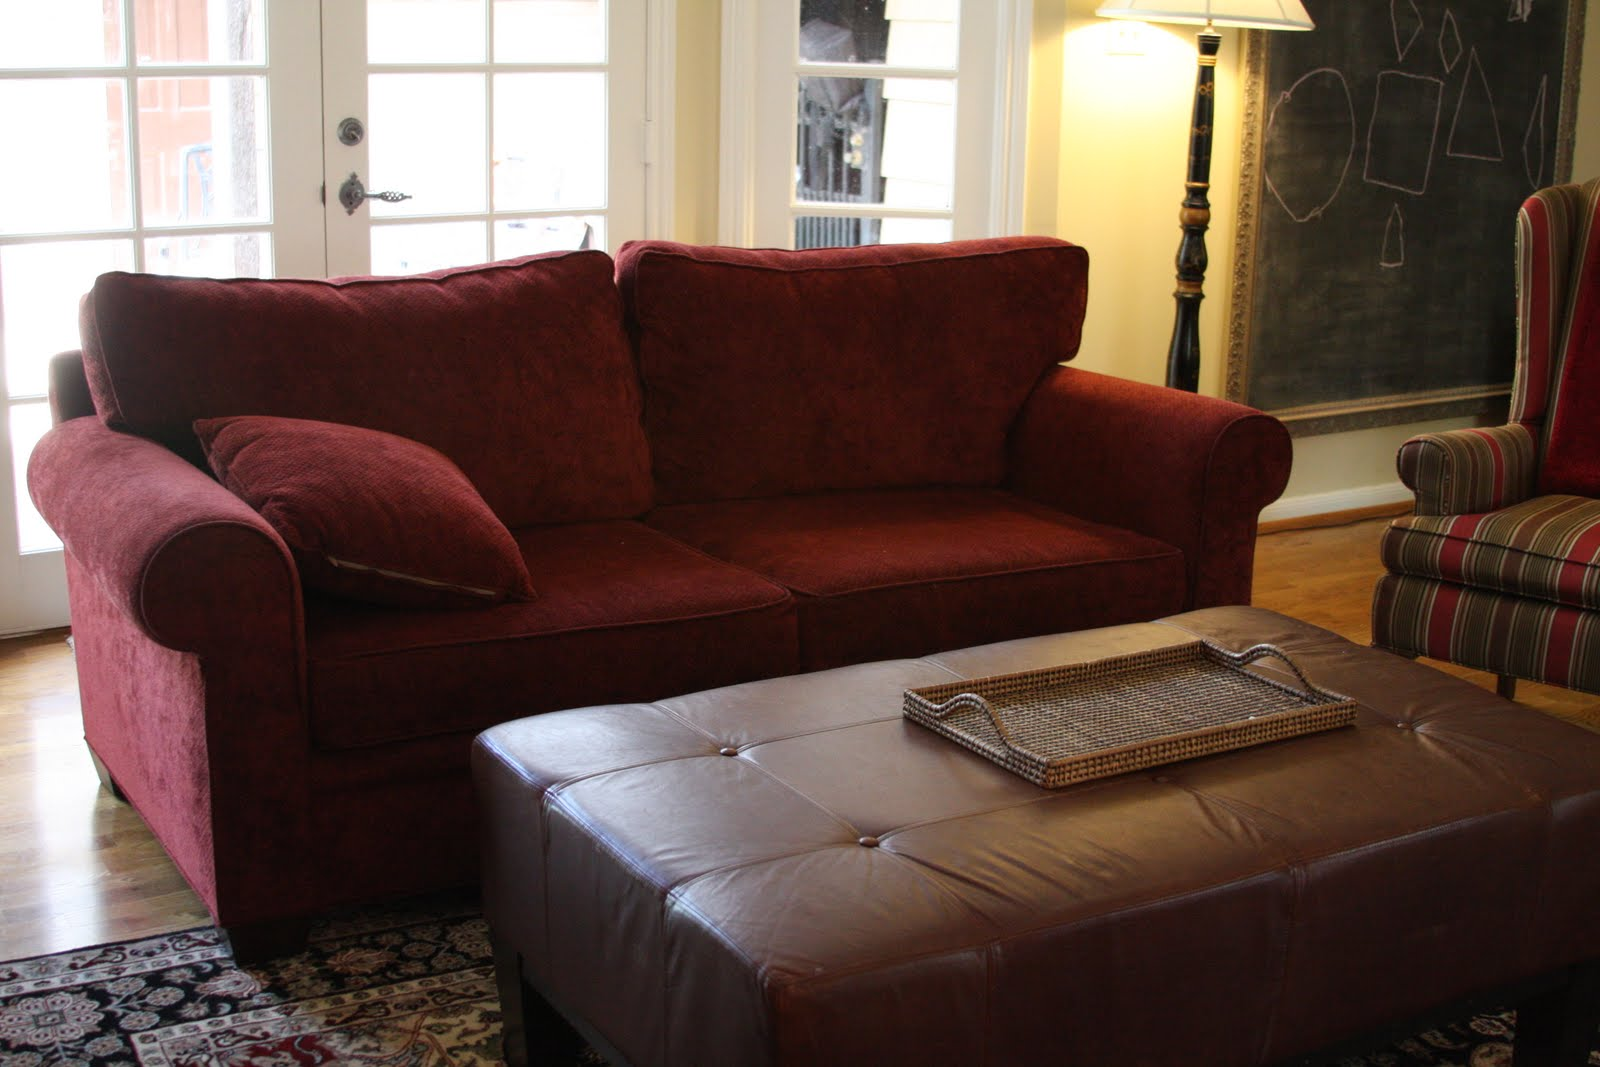 Living Room Ideas With Burgundy Leather Sofa Beds Singapore Christie Chase 233 The Power Of Pattern